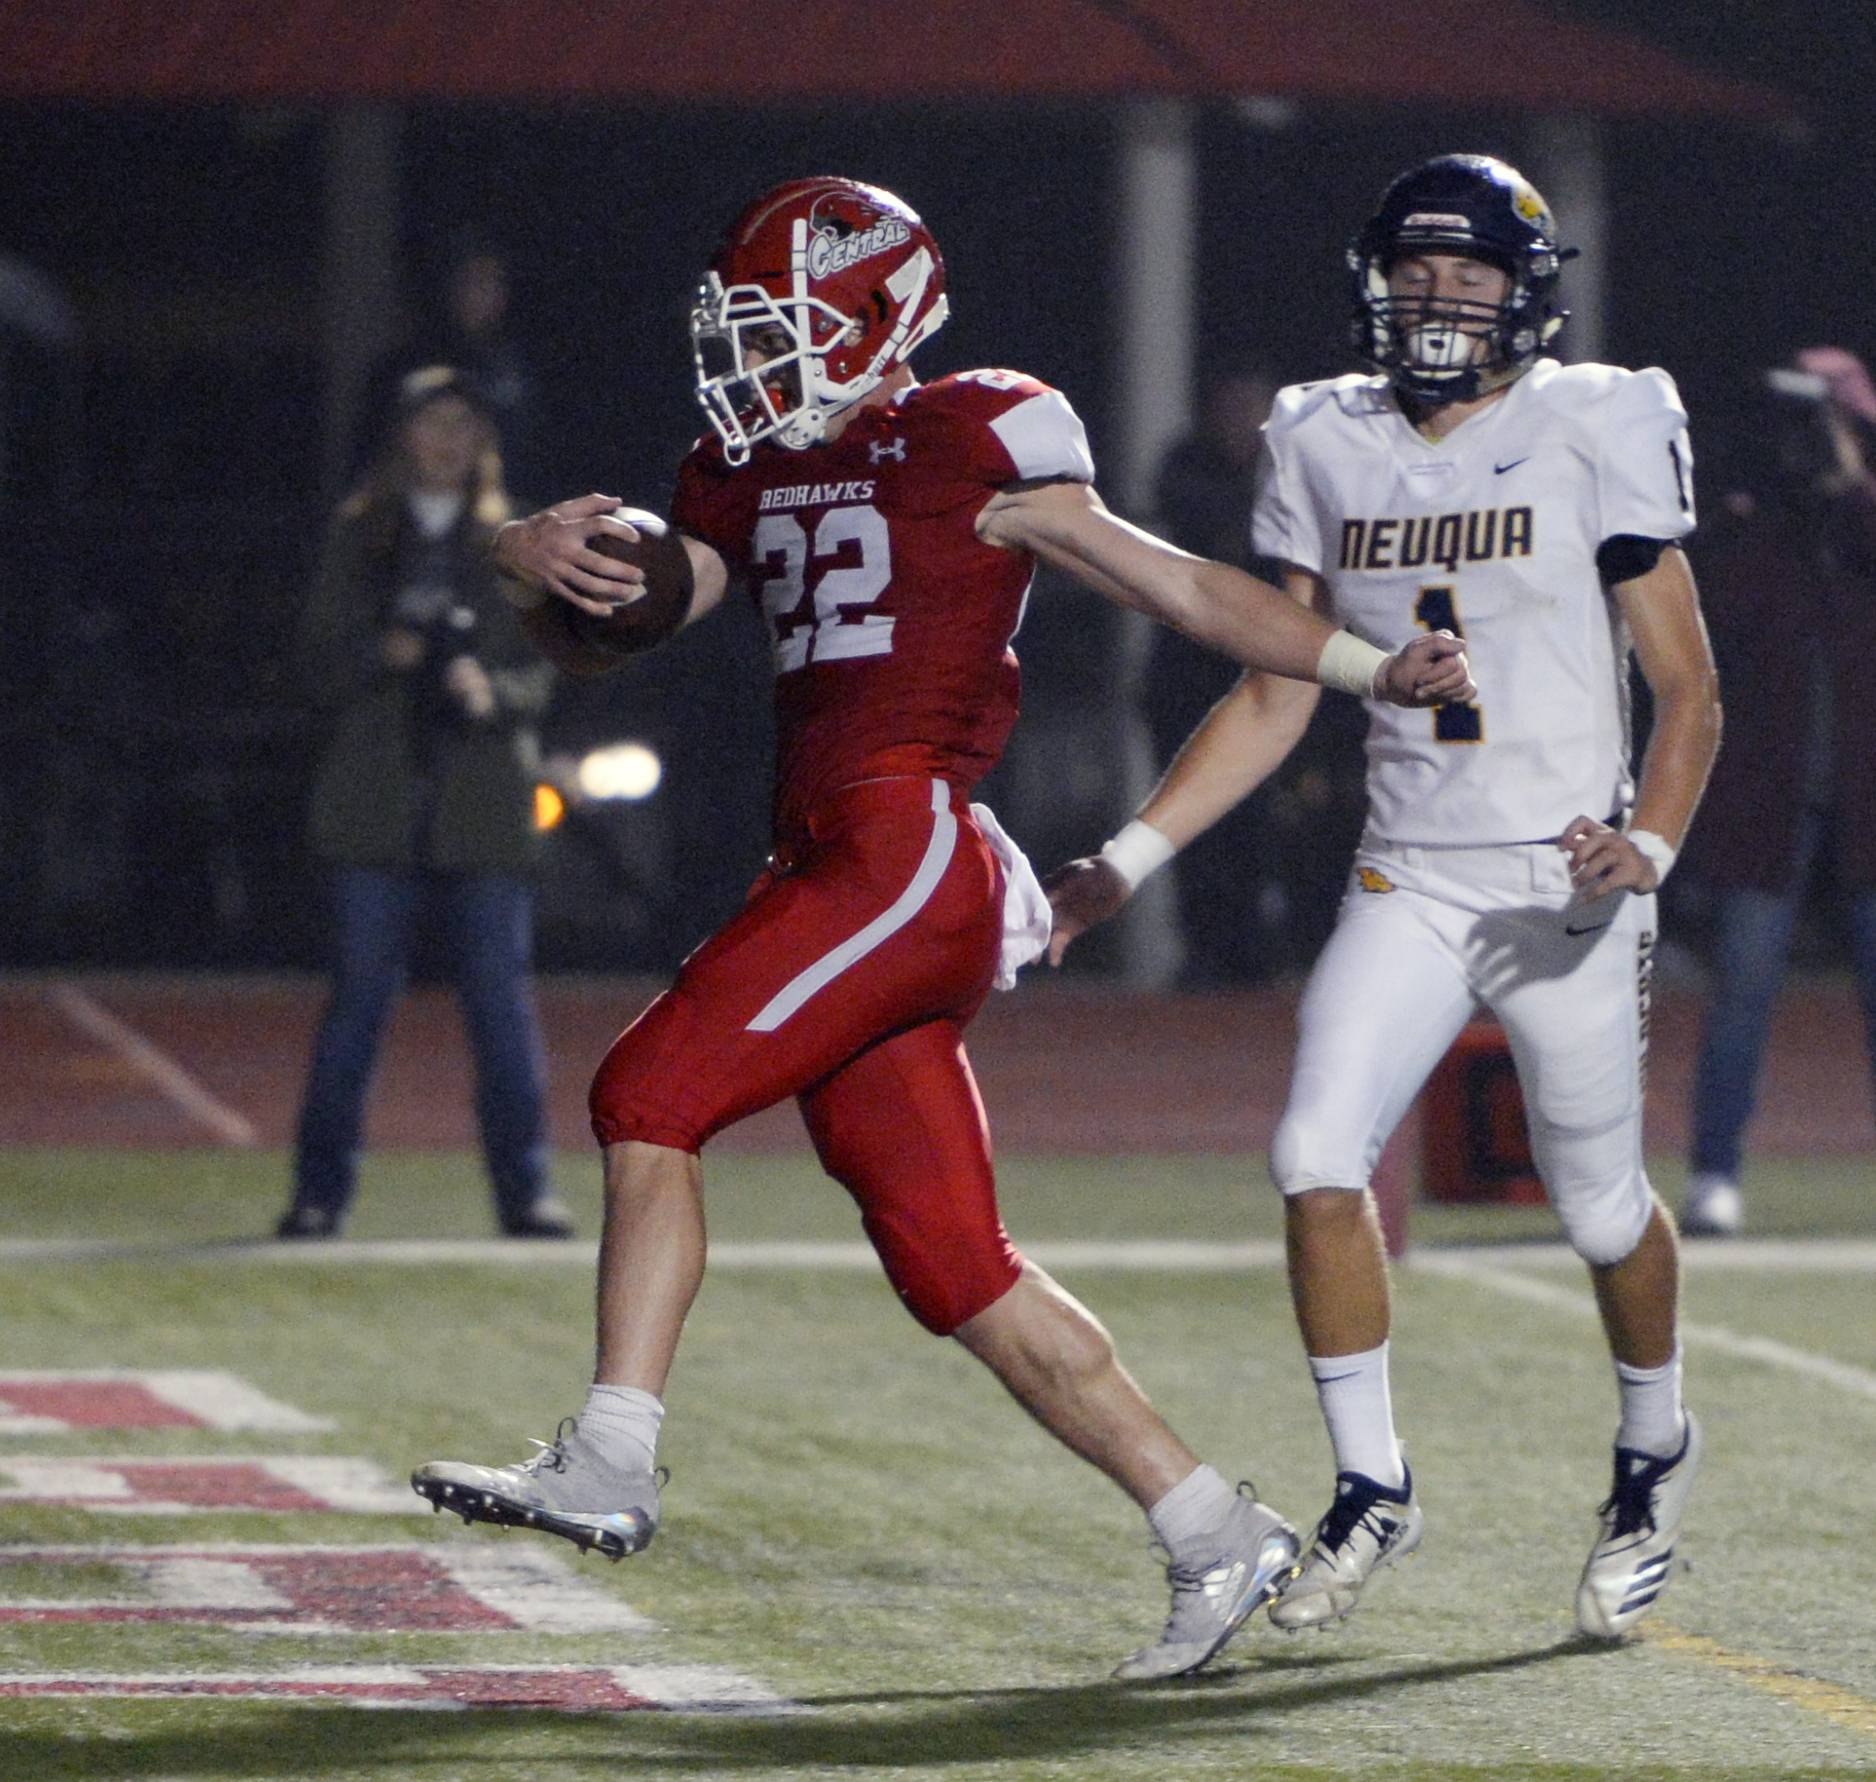 Naperville Central's Danny Hughes struts into the end zone for a second-quarter touchdown, running by Neuqua Valley's Patrick Hoffmann during the varsity football matchup in Naperville on Friday.